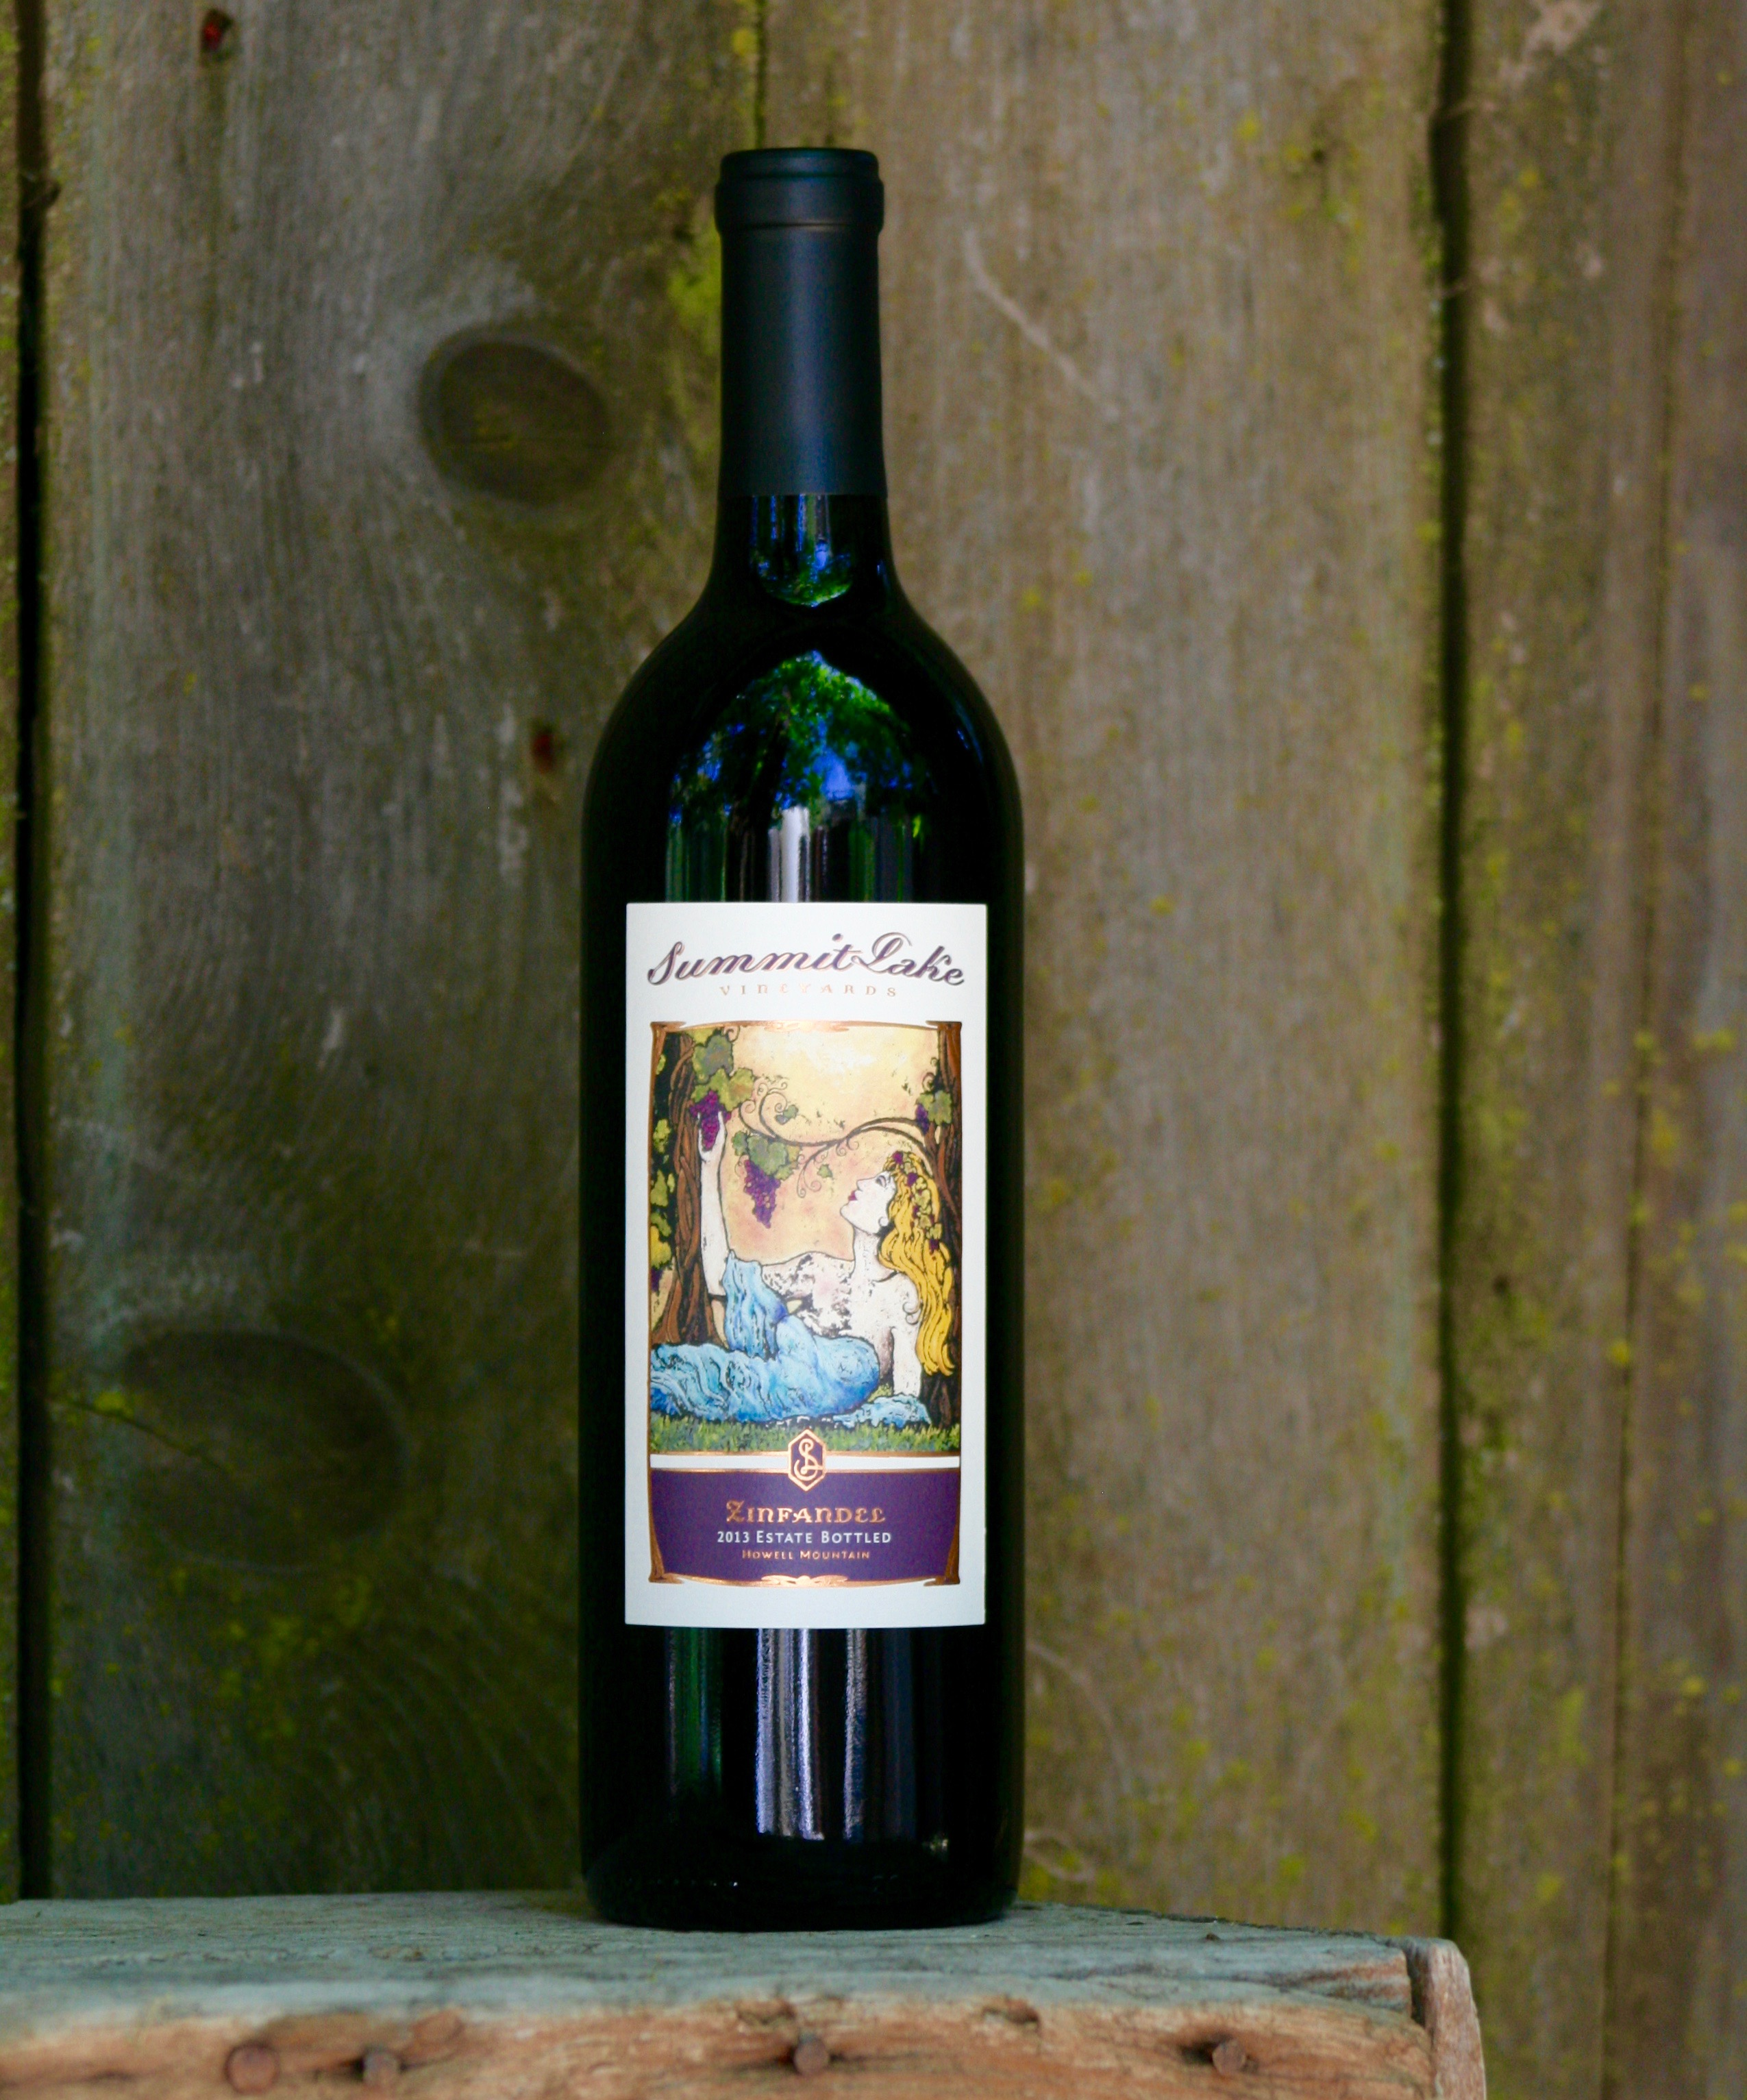 2013 Summit Lake Vineyards Zinfandel Howell Mountain, Napa Valley - Summit Lake Vineyards & Winery